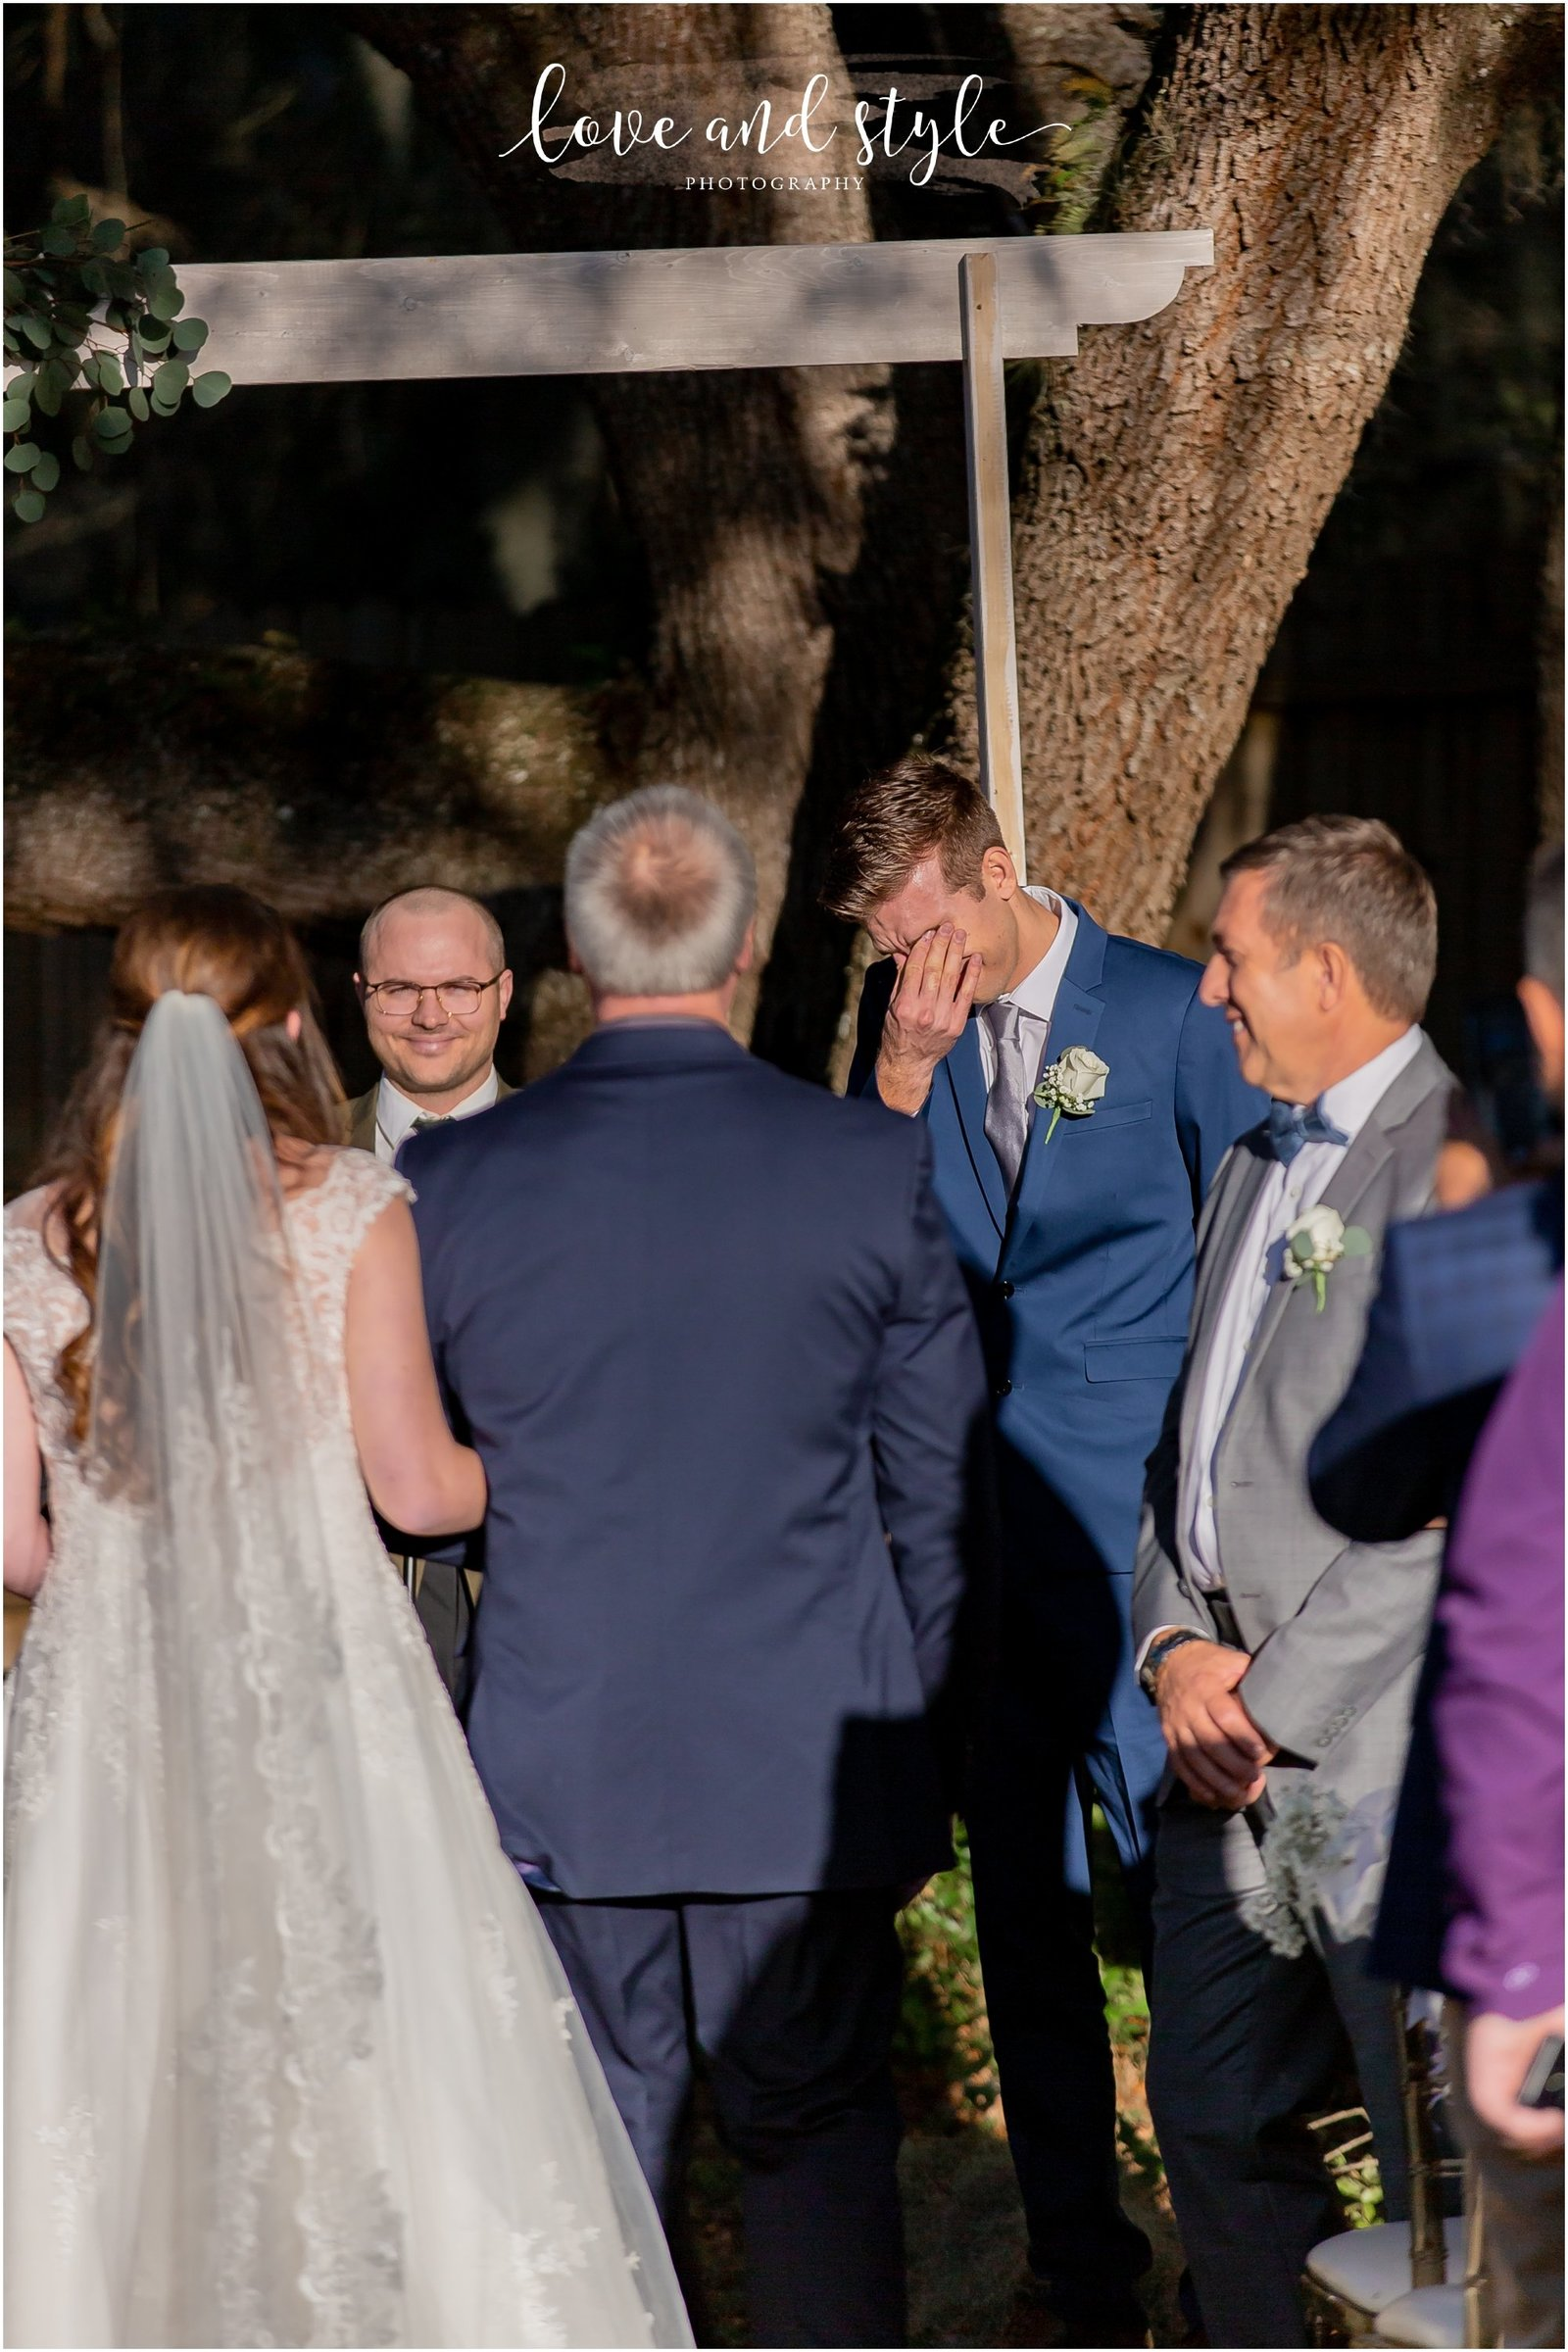 Groom sees his bride walking down the aisle at The Barn at Chapel Creek in Venice, Florida